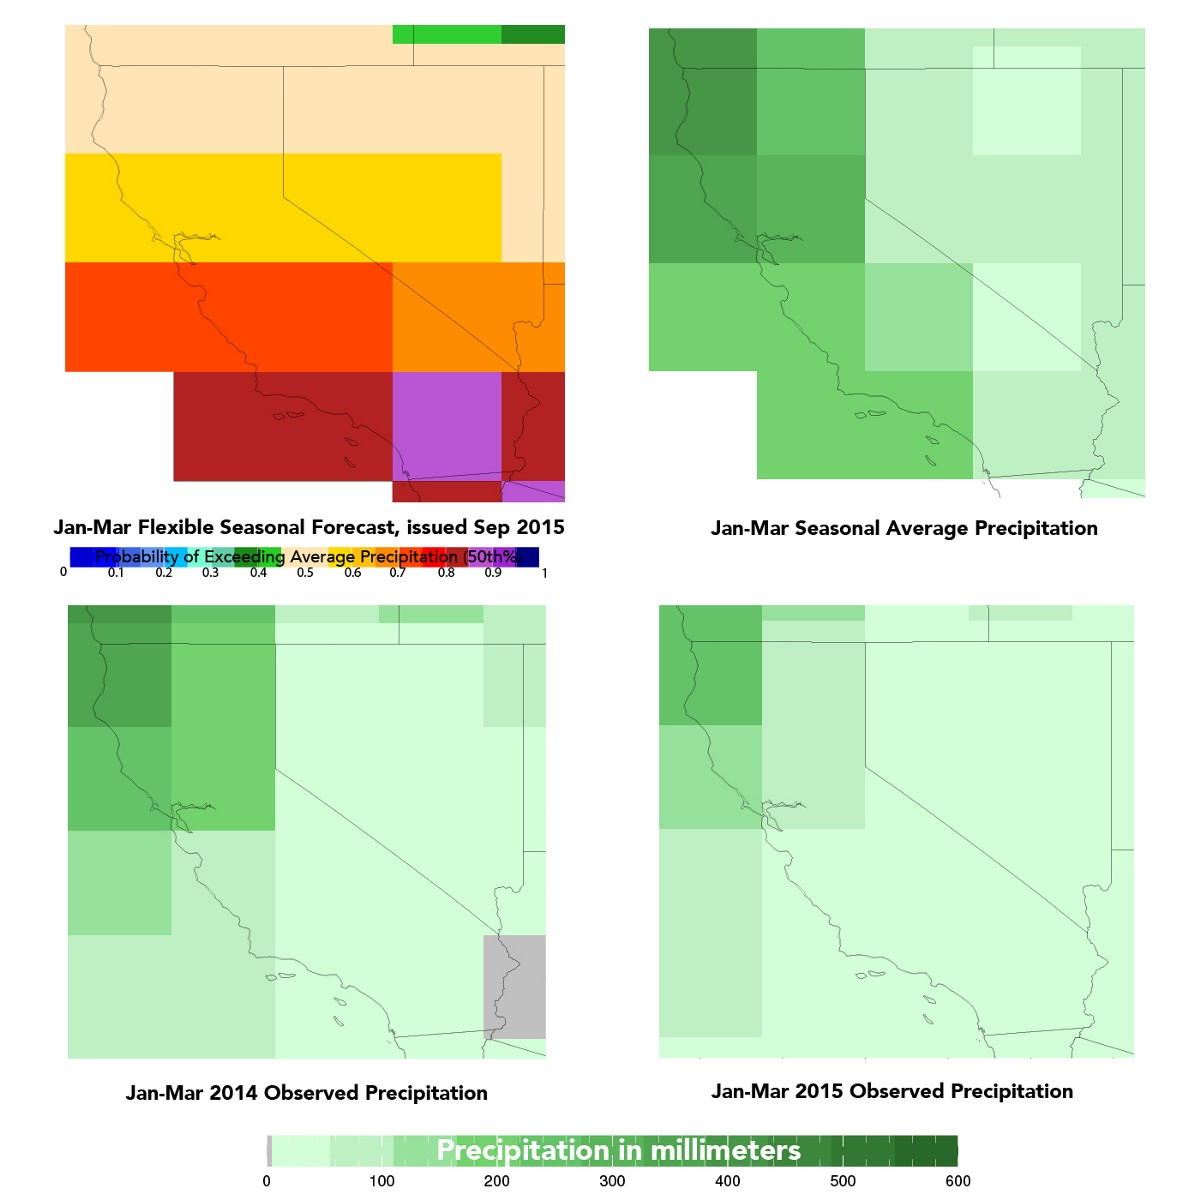 In this top left image, as in the previous figure, this shows the forecast for the season (in this case, Jan-Mar 2016) relative to the season's average. Much of the state has at least a 60% chance of getting more precipitation than average, with the southern quarter of the state having at least an 80% chance. The top right image shows the average precipitation (rain and snow) for the January to March season based on 1981–2010 data. The numbers overall are higher than those from October to December, but you can still see the trend of more precipitation in the northern part of the state. These are some of the most critical months for California to receive precipitation that can be used in the rest of the year. The two bottom images show the precipitation from the last two January to March seasons. 2015 was drier than 2014, but both were below average, as indicated by lighter shades than those seen in the map of average precipitation.